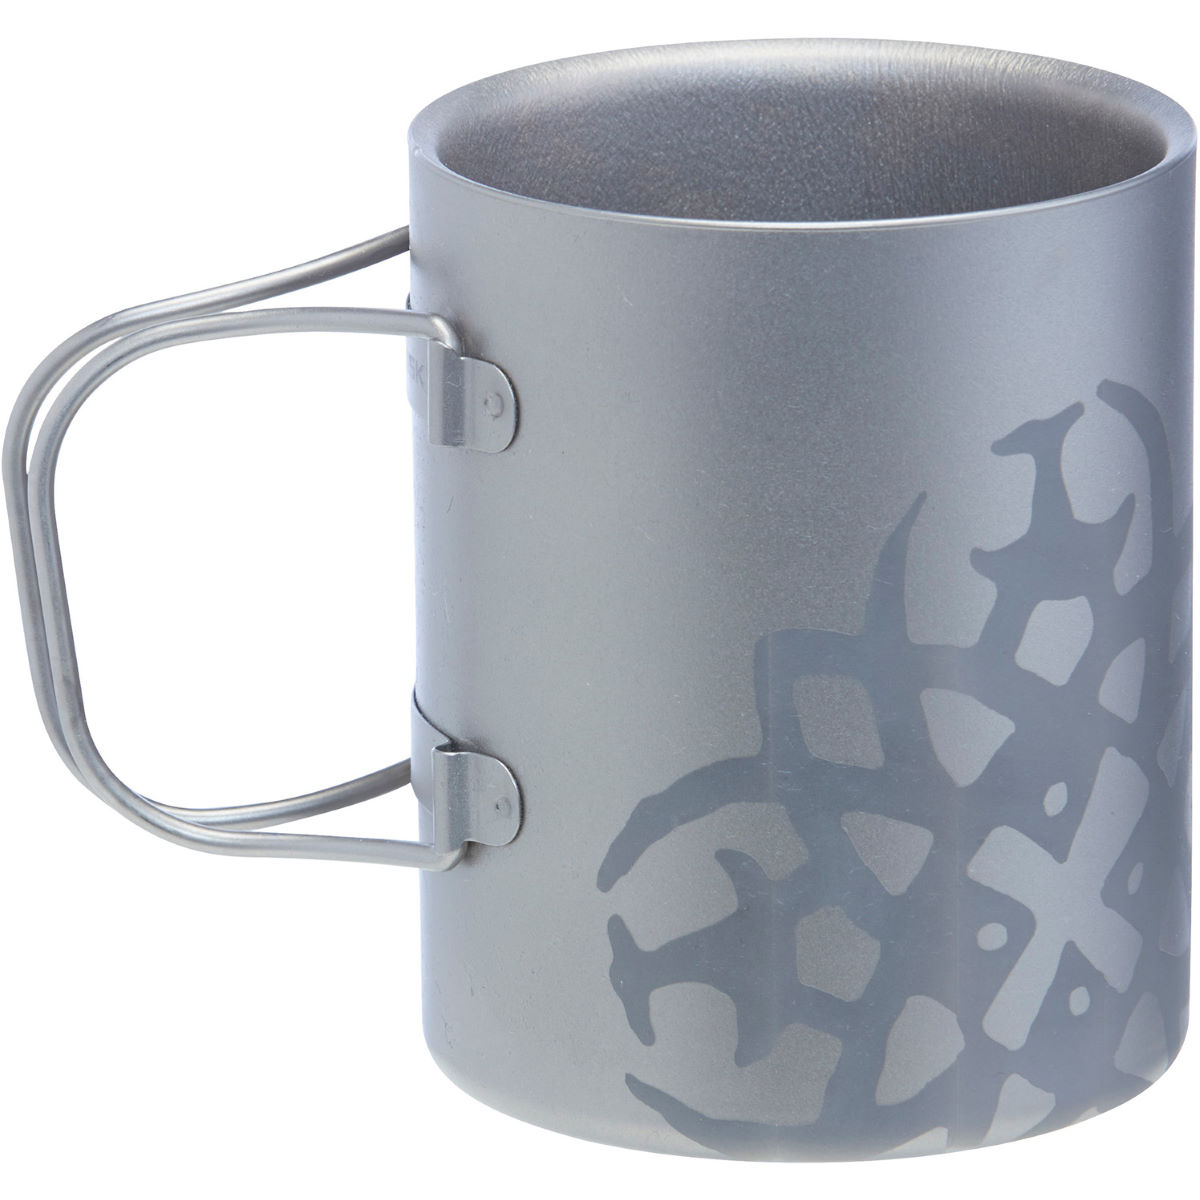 Nordisk Titanium Double Walled Mug (220ml)   Kitchen Equipment